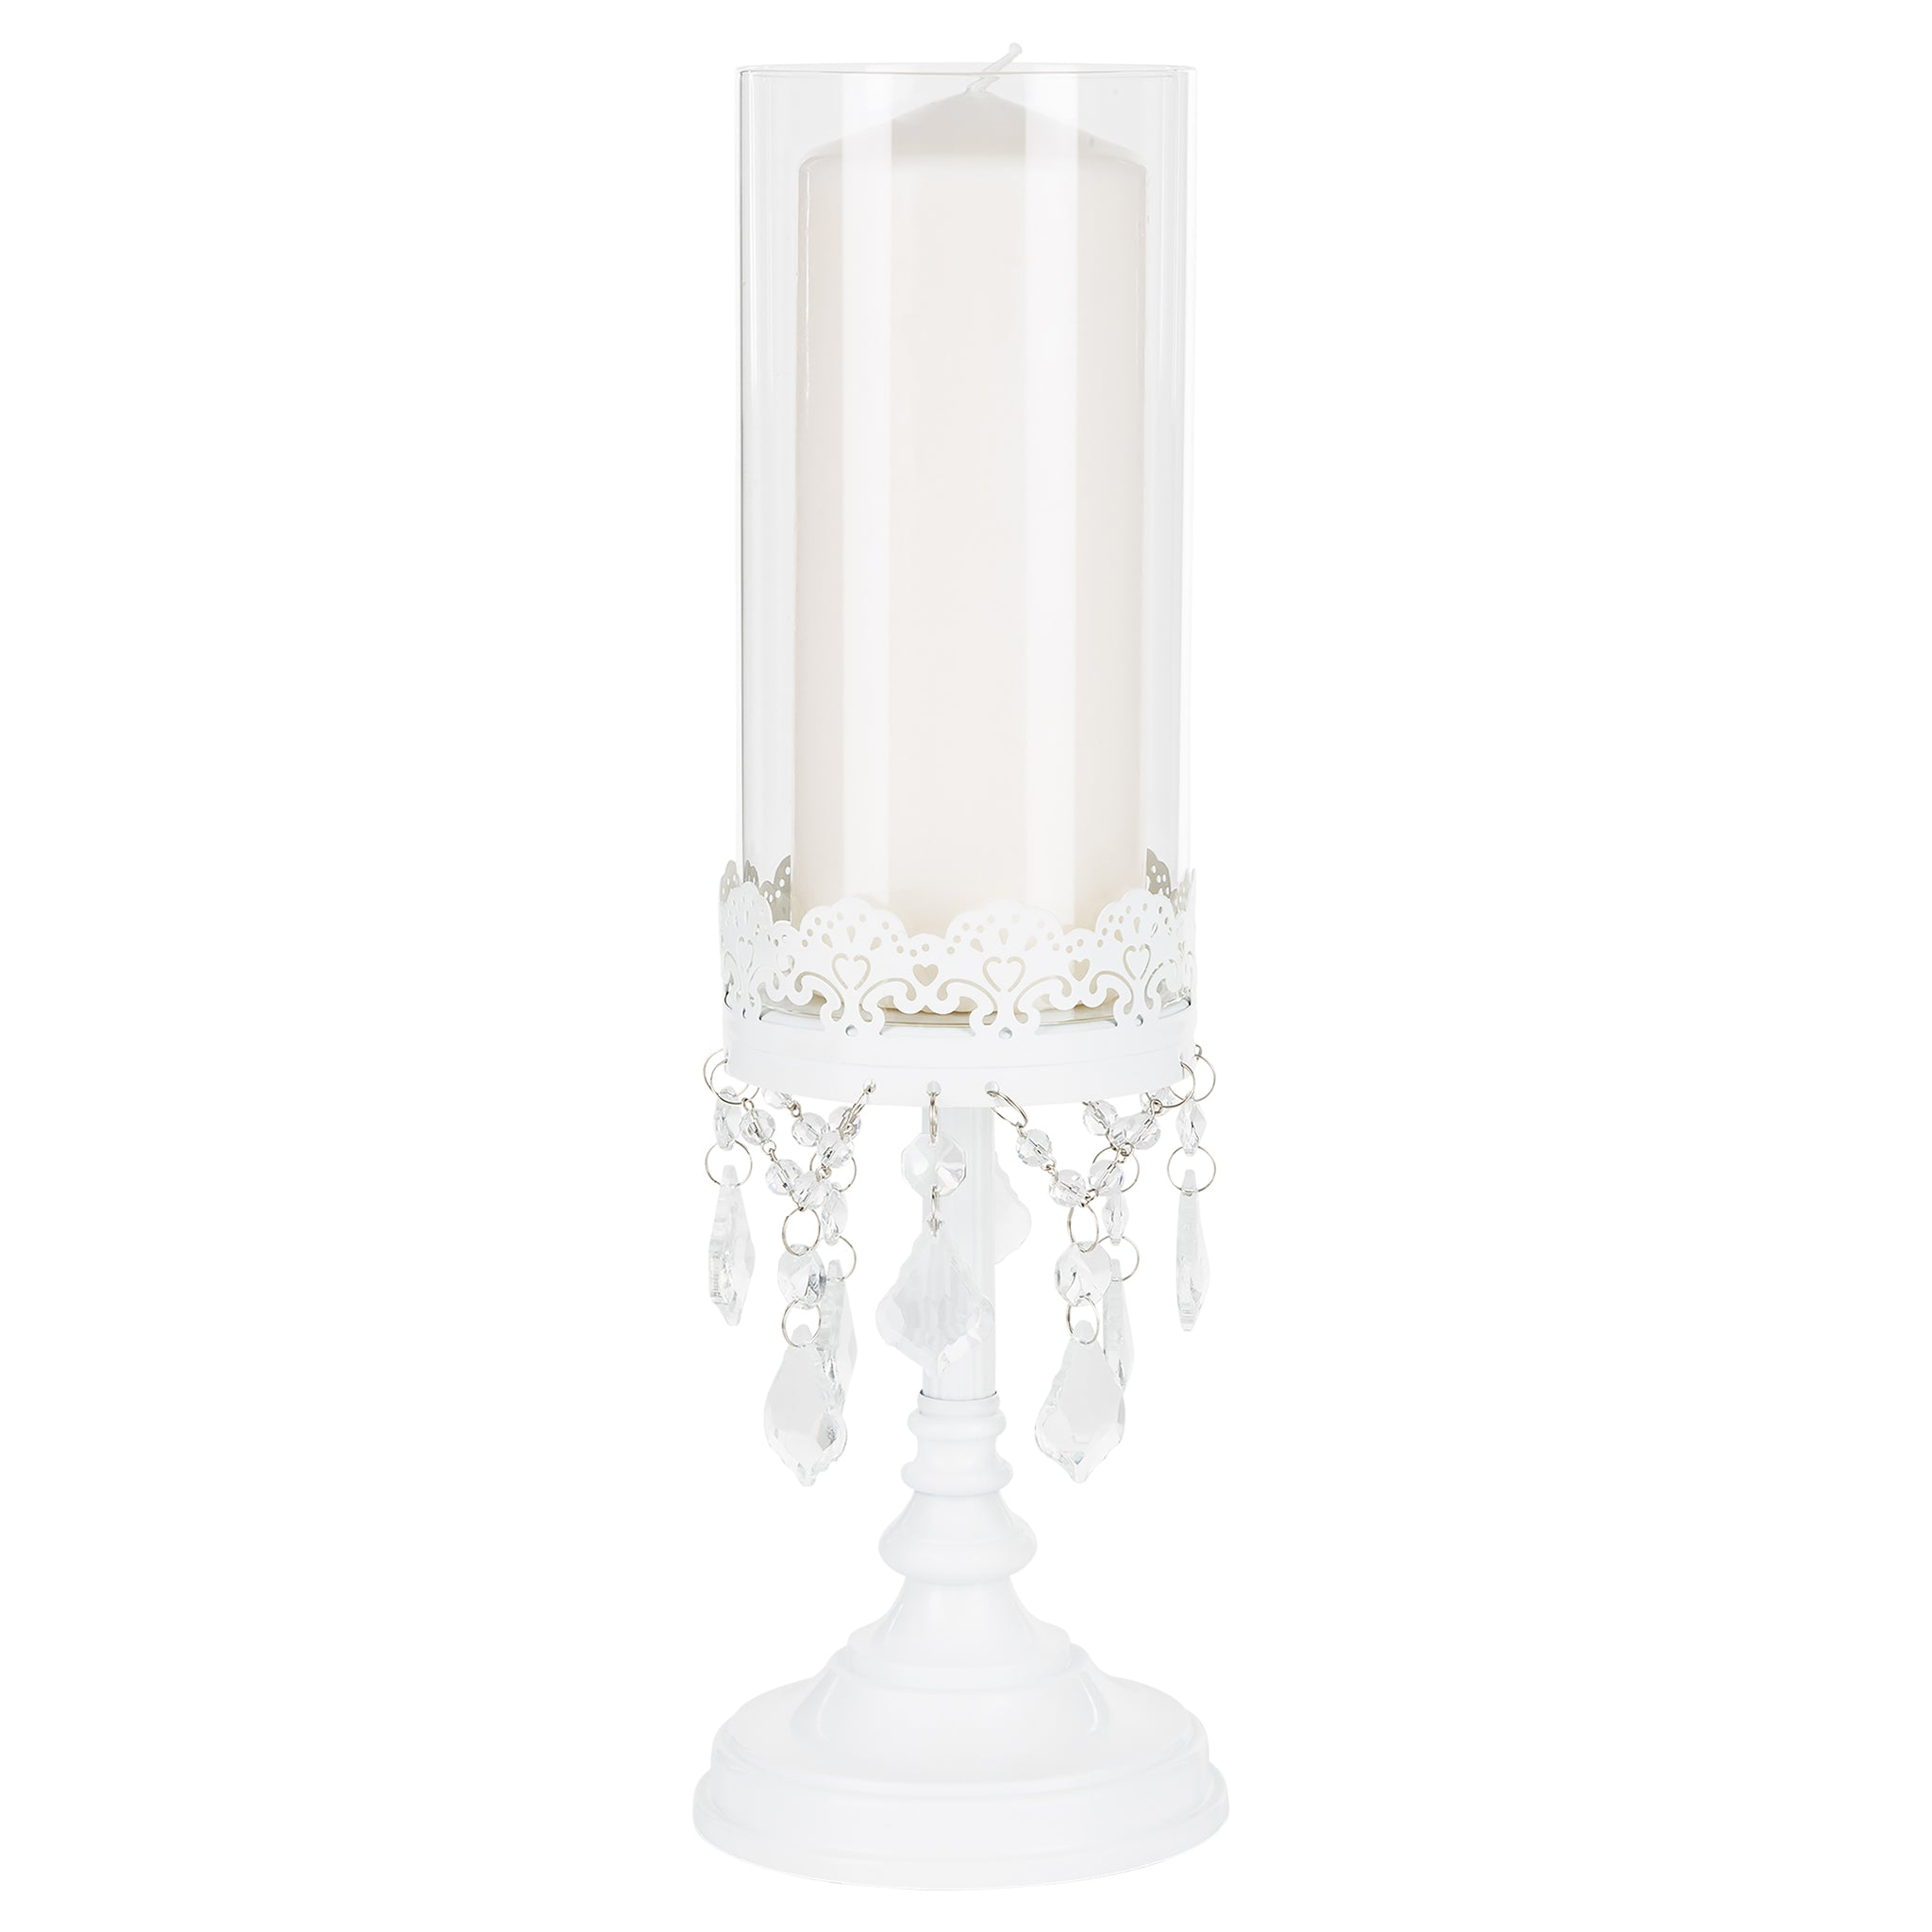 Amalfi Decor 15 Inch Tall Crystal-Draped Glass Hurricane Candle Holder (White) | H | Stainless Steel Frame with Glass Crystals